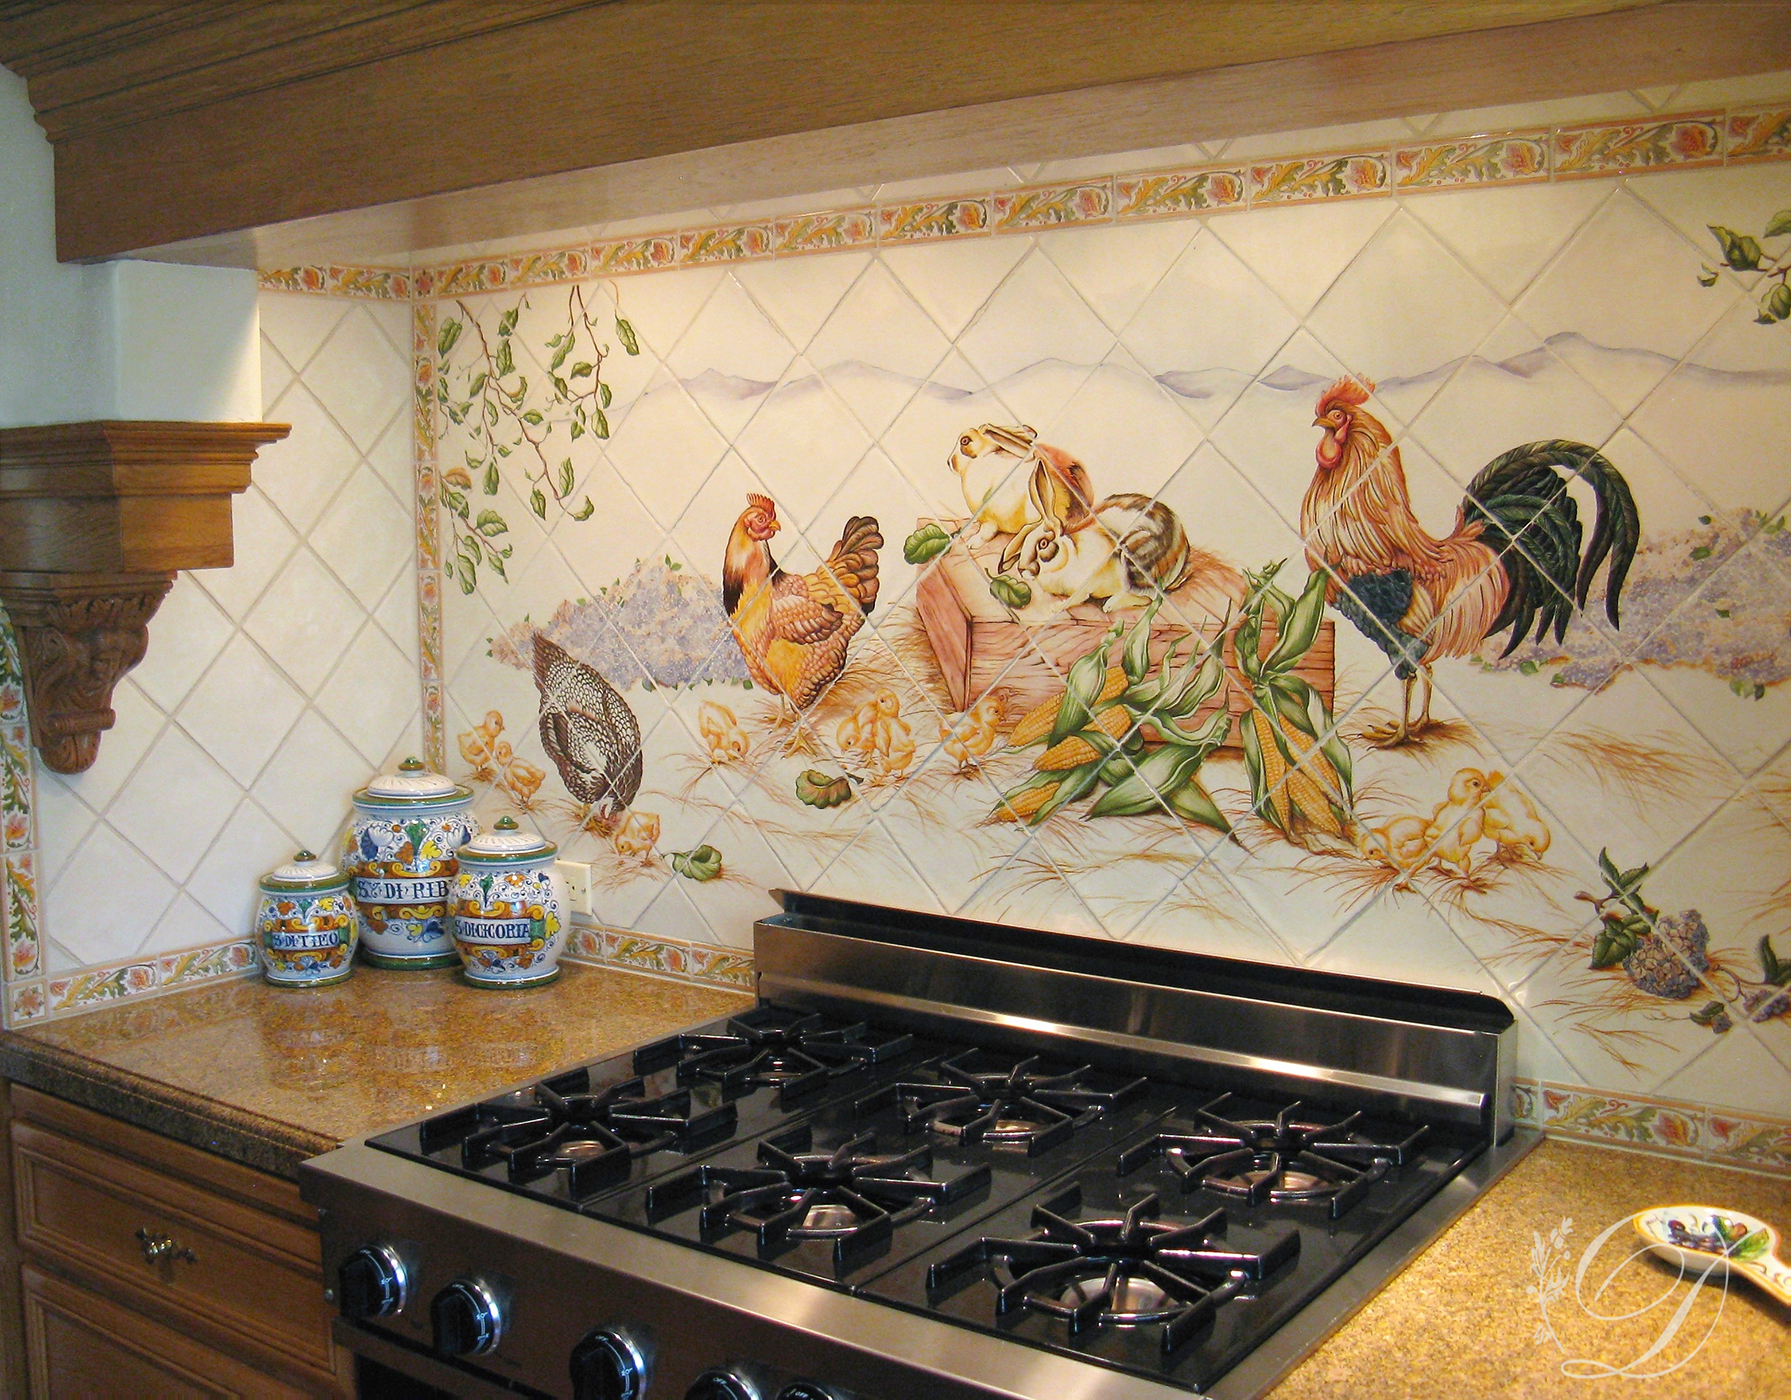 007_Kitchen_-LA-Estate-stove-mural